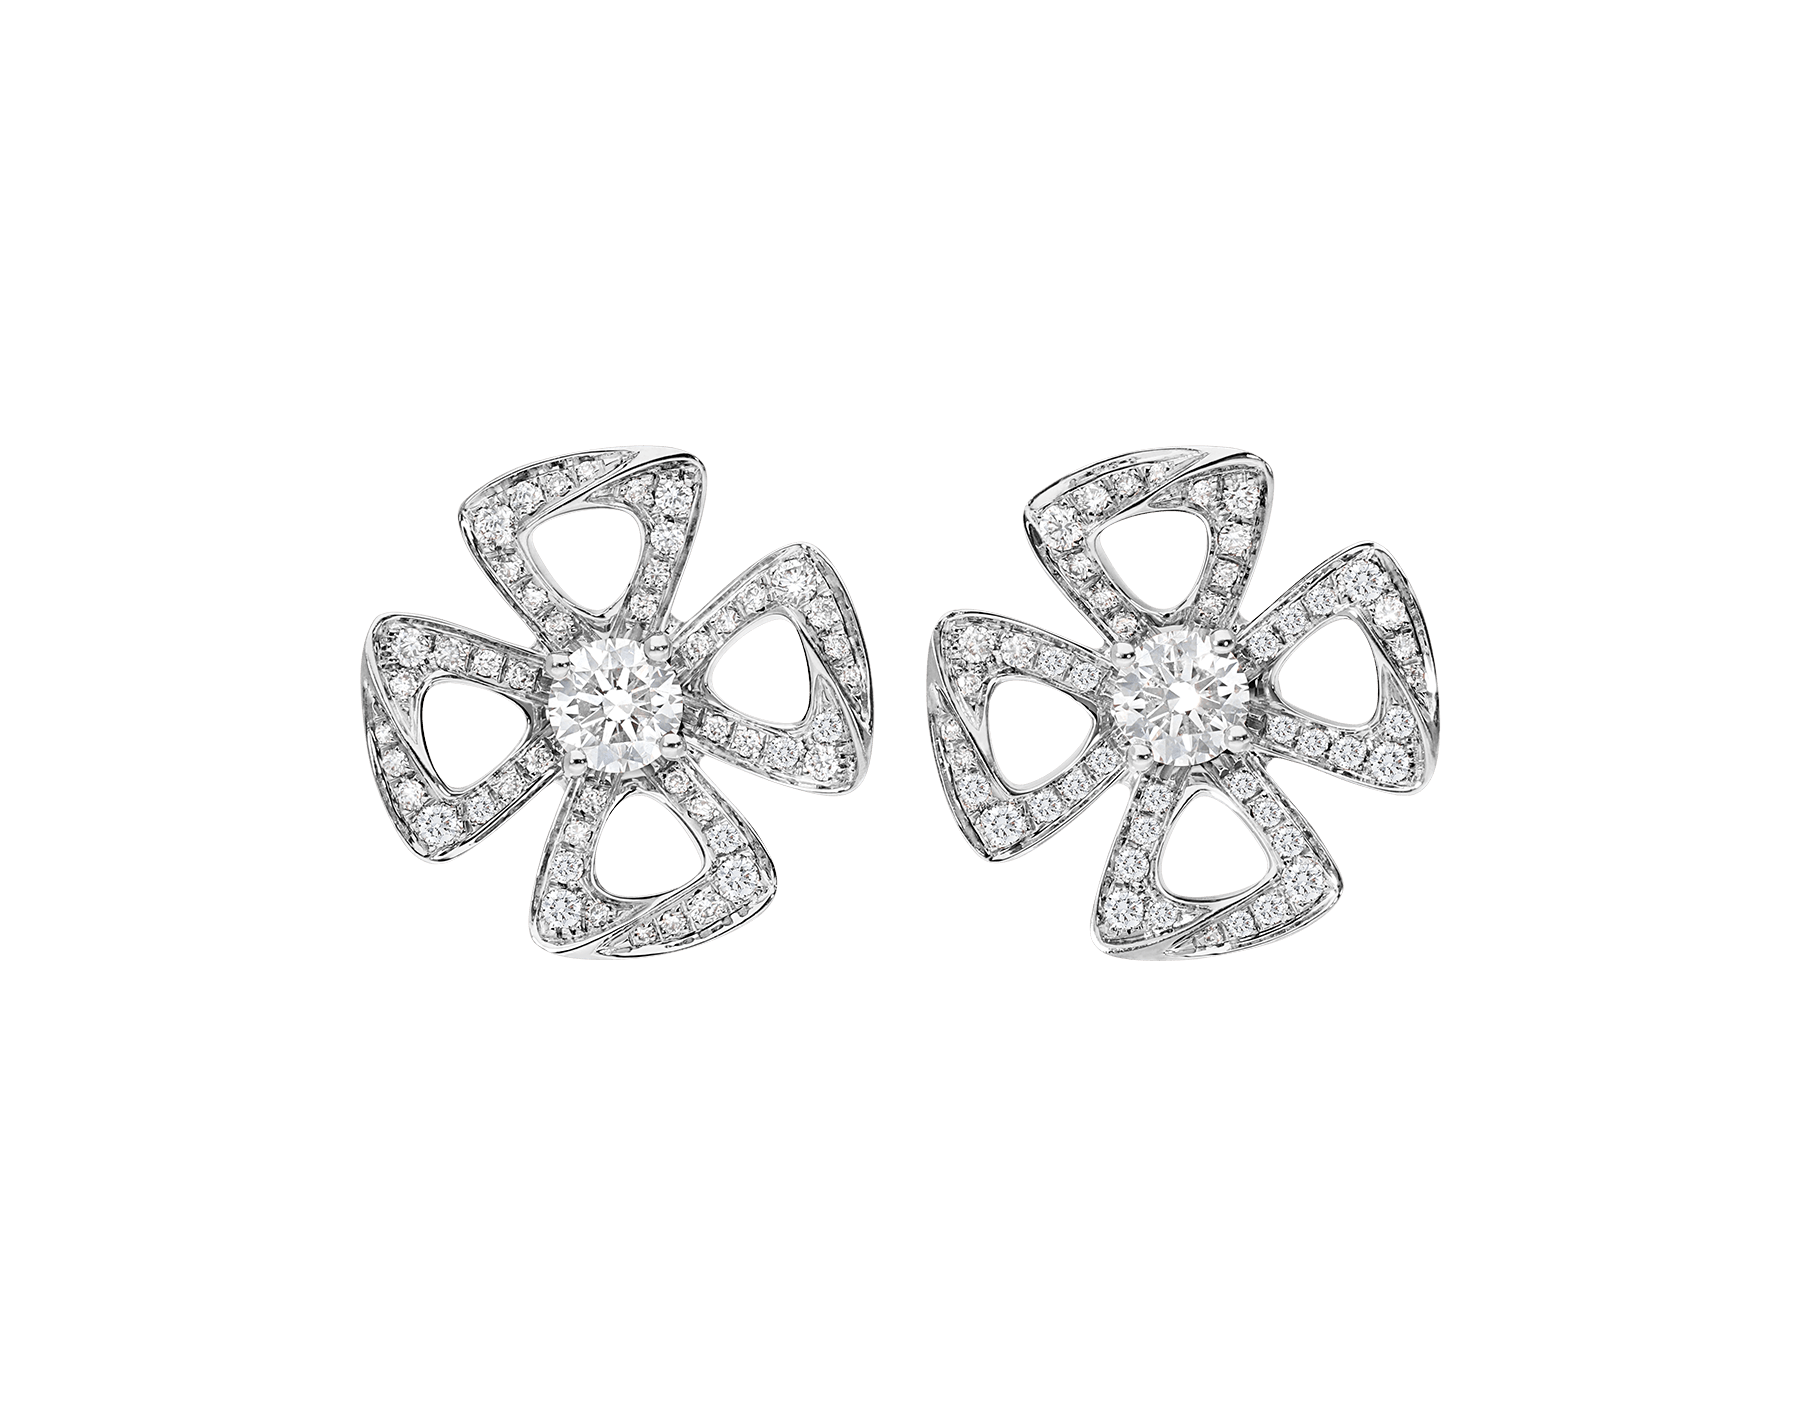 Fiorever 18 kt white gold earrings set with two central diamonds (0.20 ct each) and pavé diamonds (0.33 ct) 354502 image 1